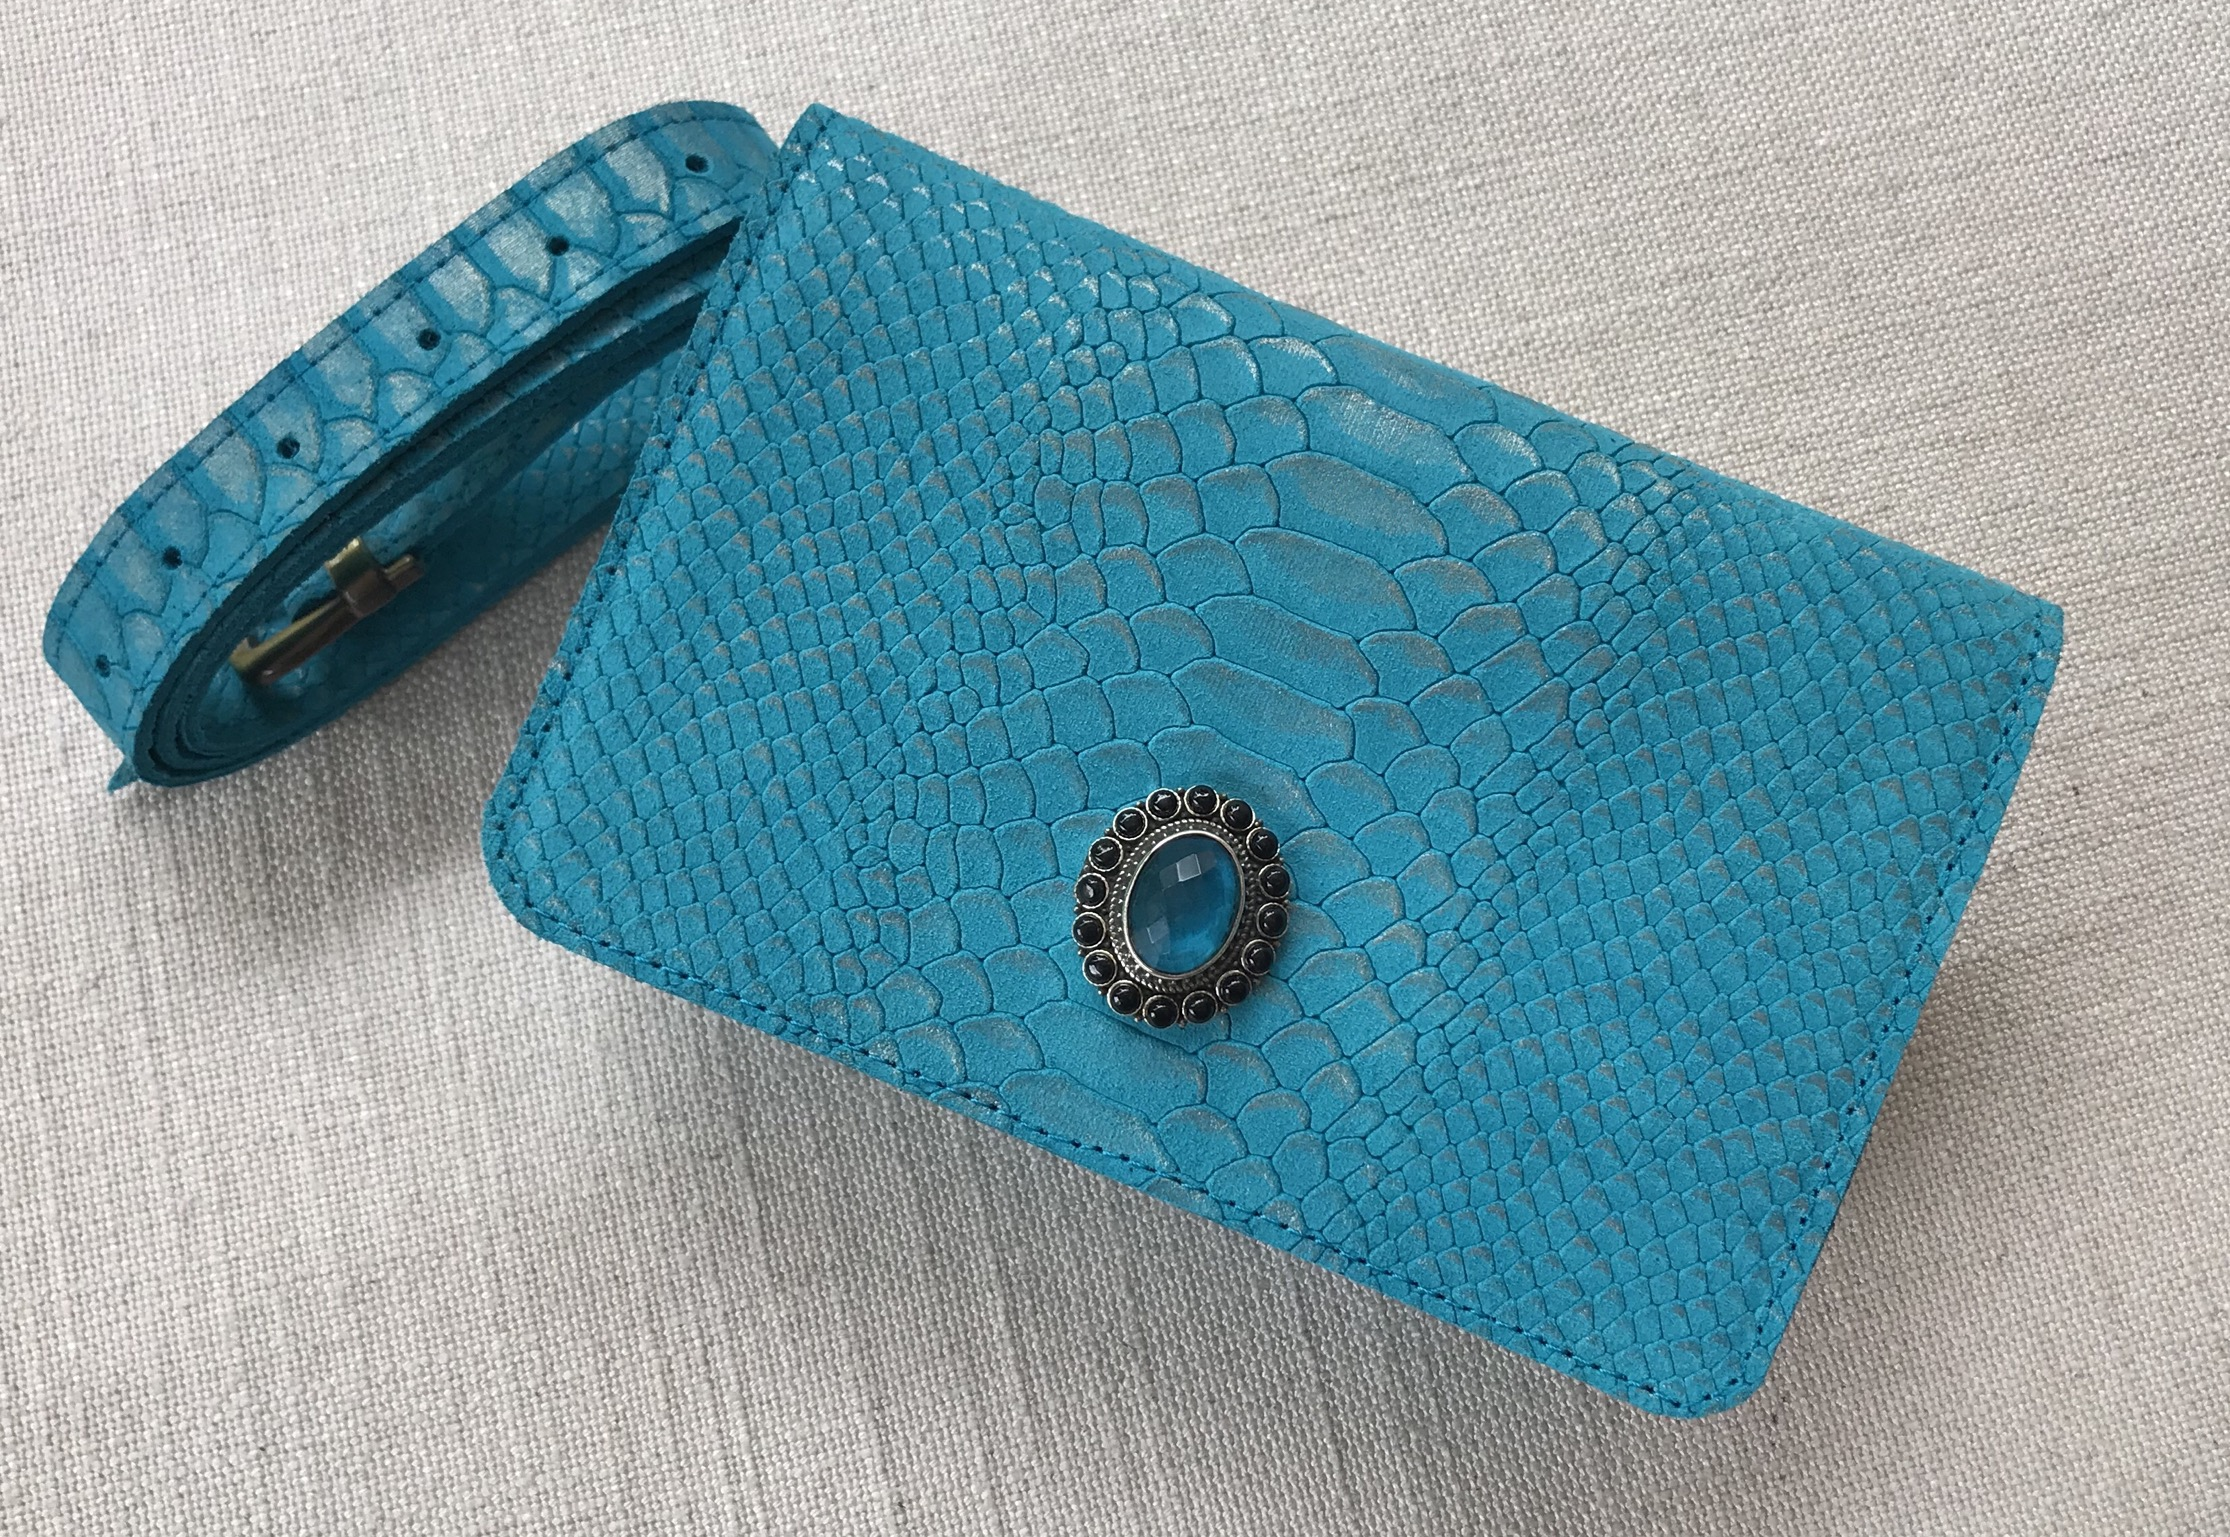 Beltbag Leather jewelry croco turquoise